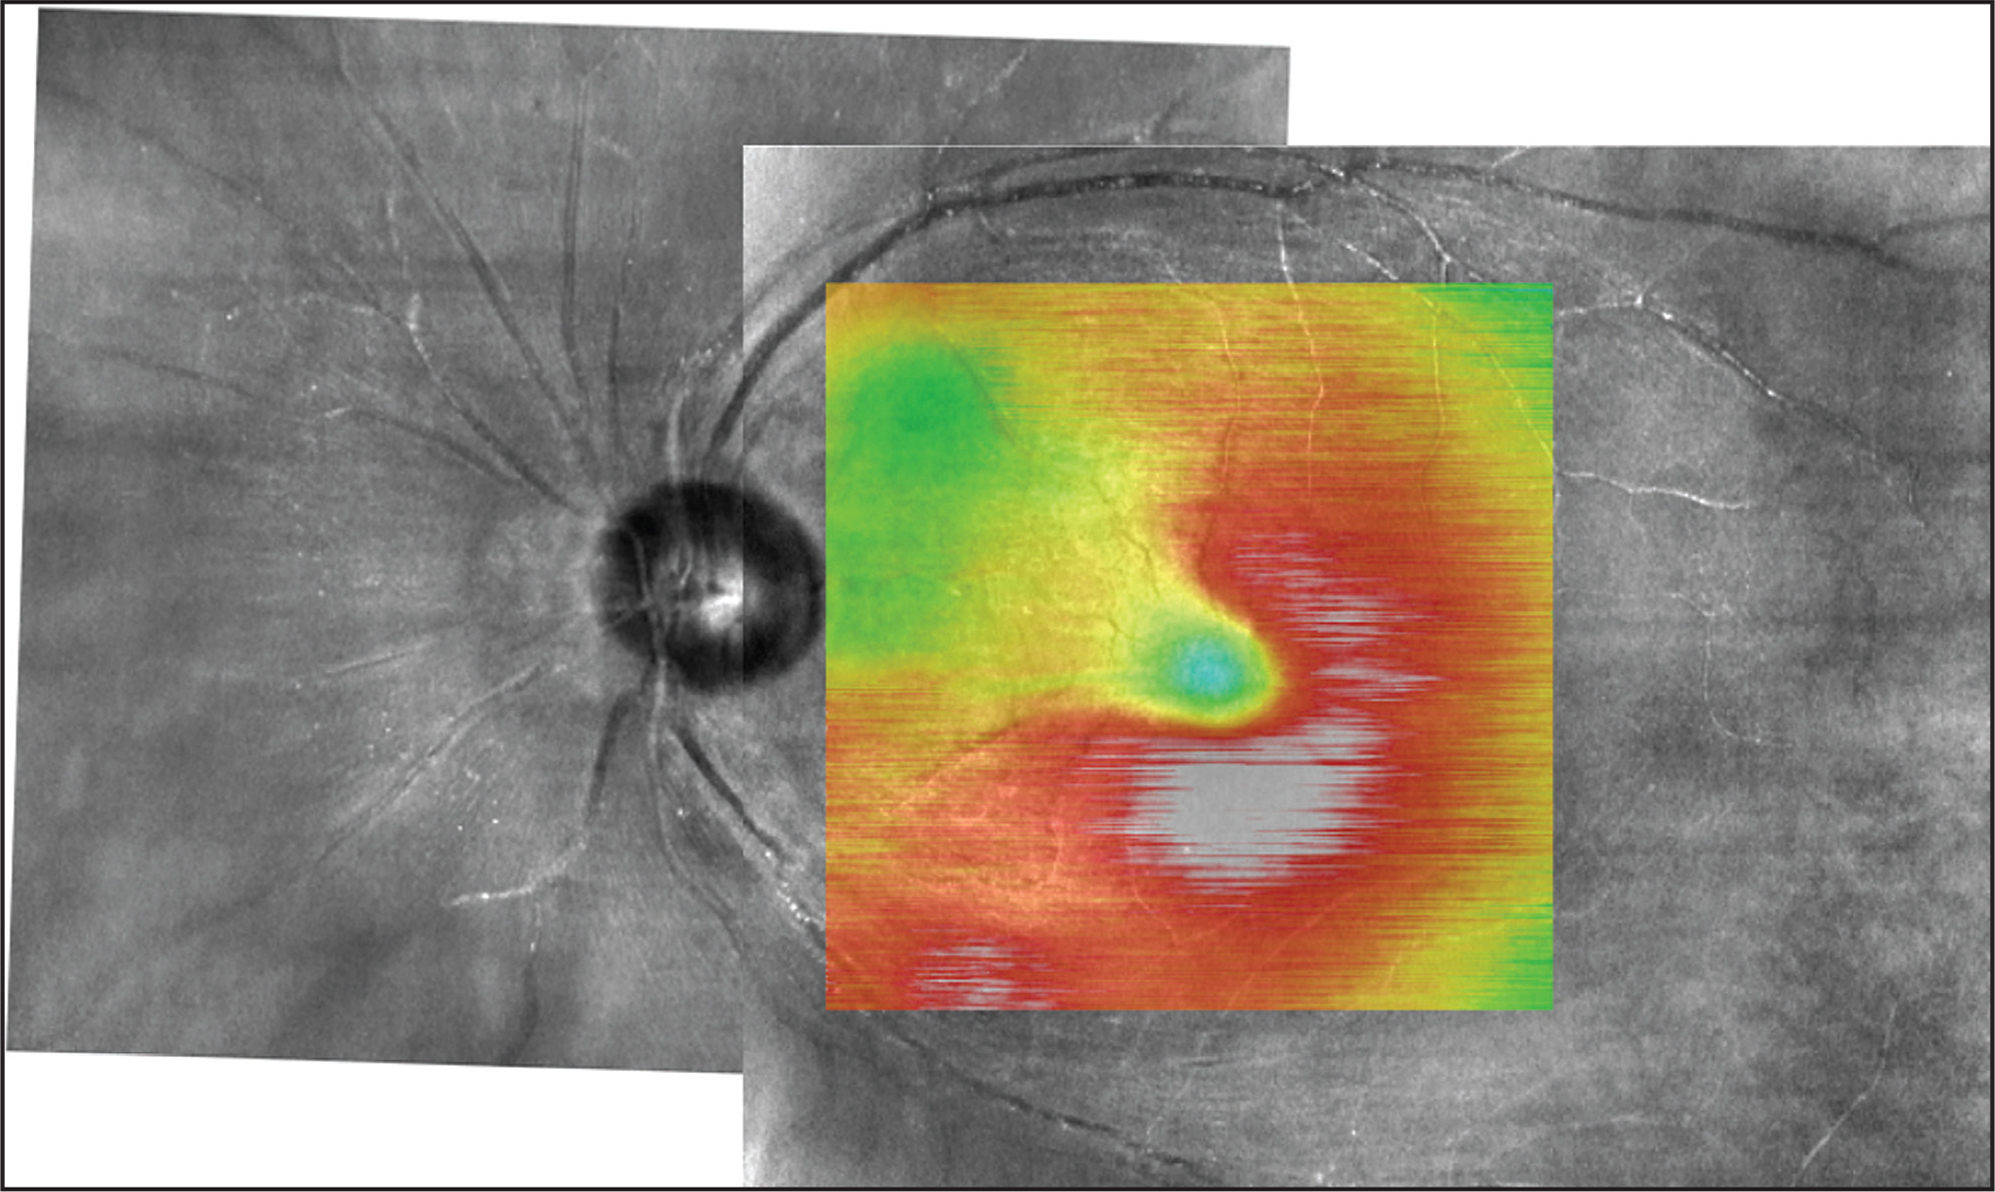 A 6 mm × 6 mm macular thickness map registered on a laser scanning ophthalmoscope fundus image demonstrating macular edema in the areas of whitening seen on clinical exam and color fundus photography. The area of arterial sparing superonasally does not have edema.